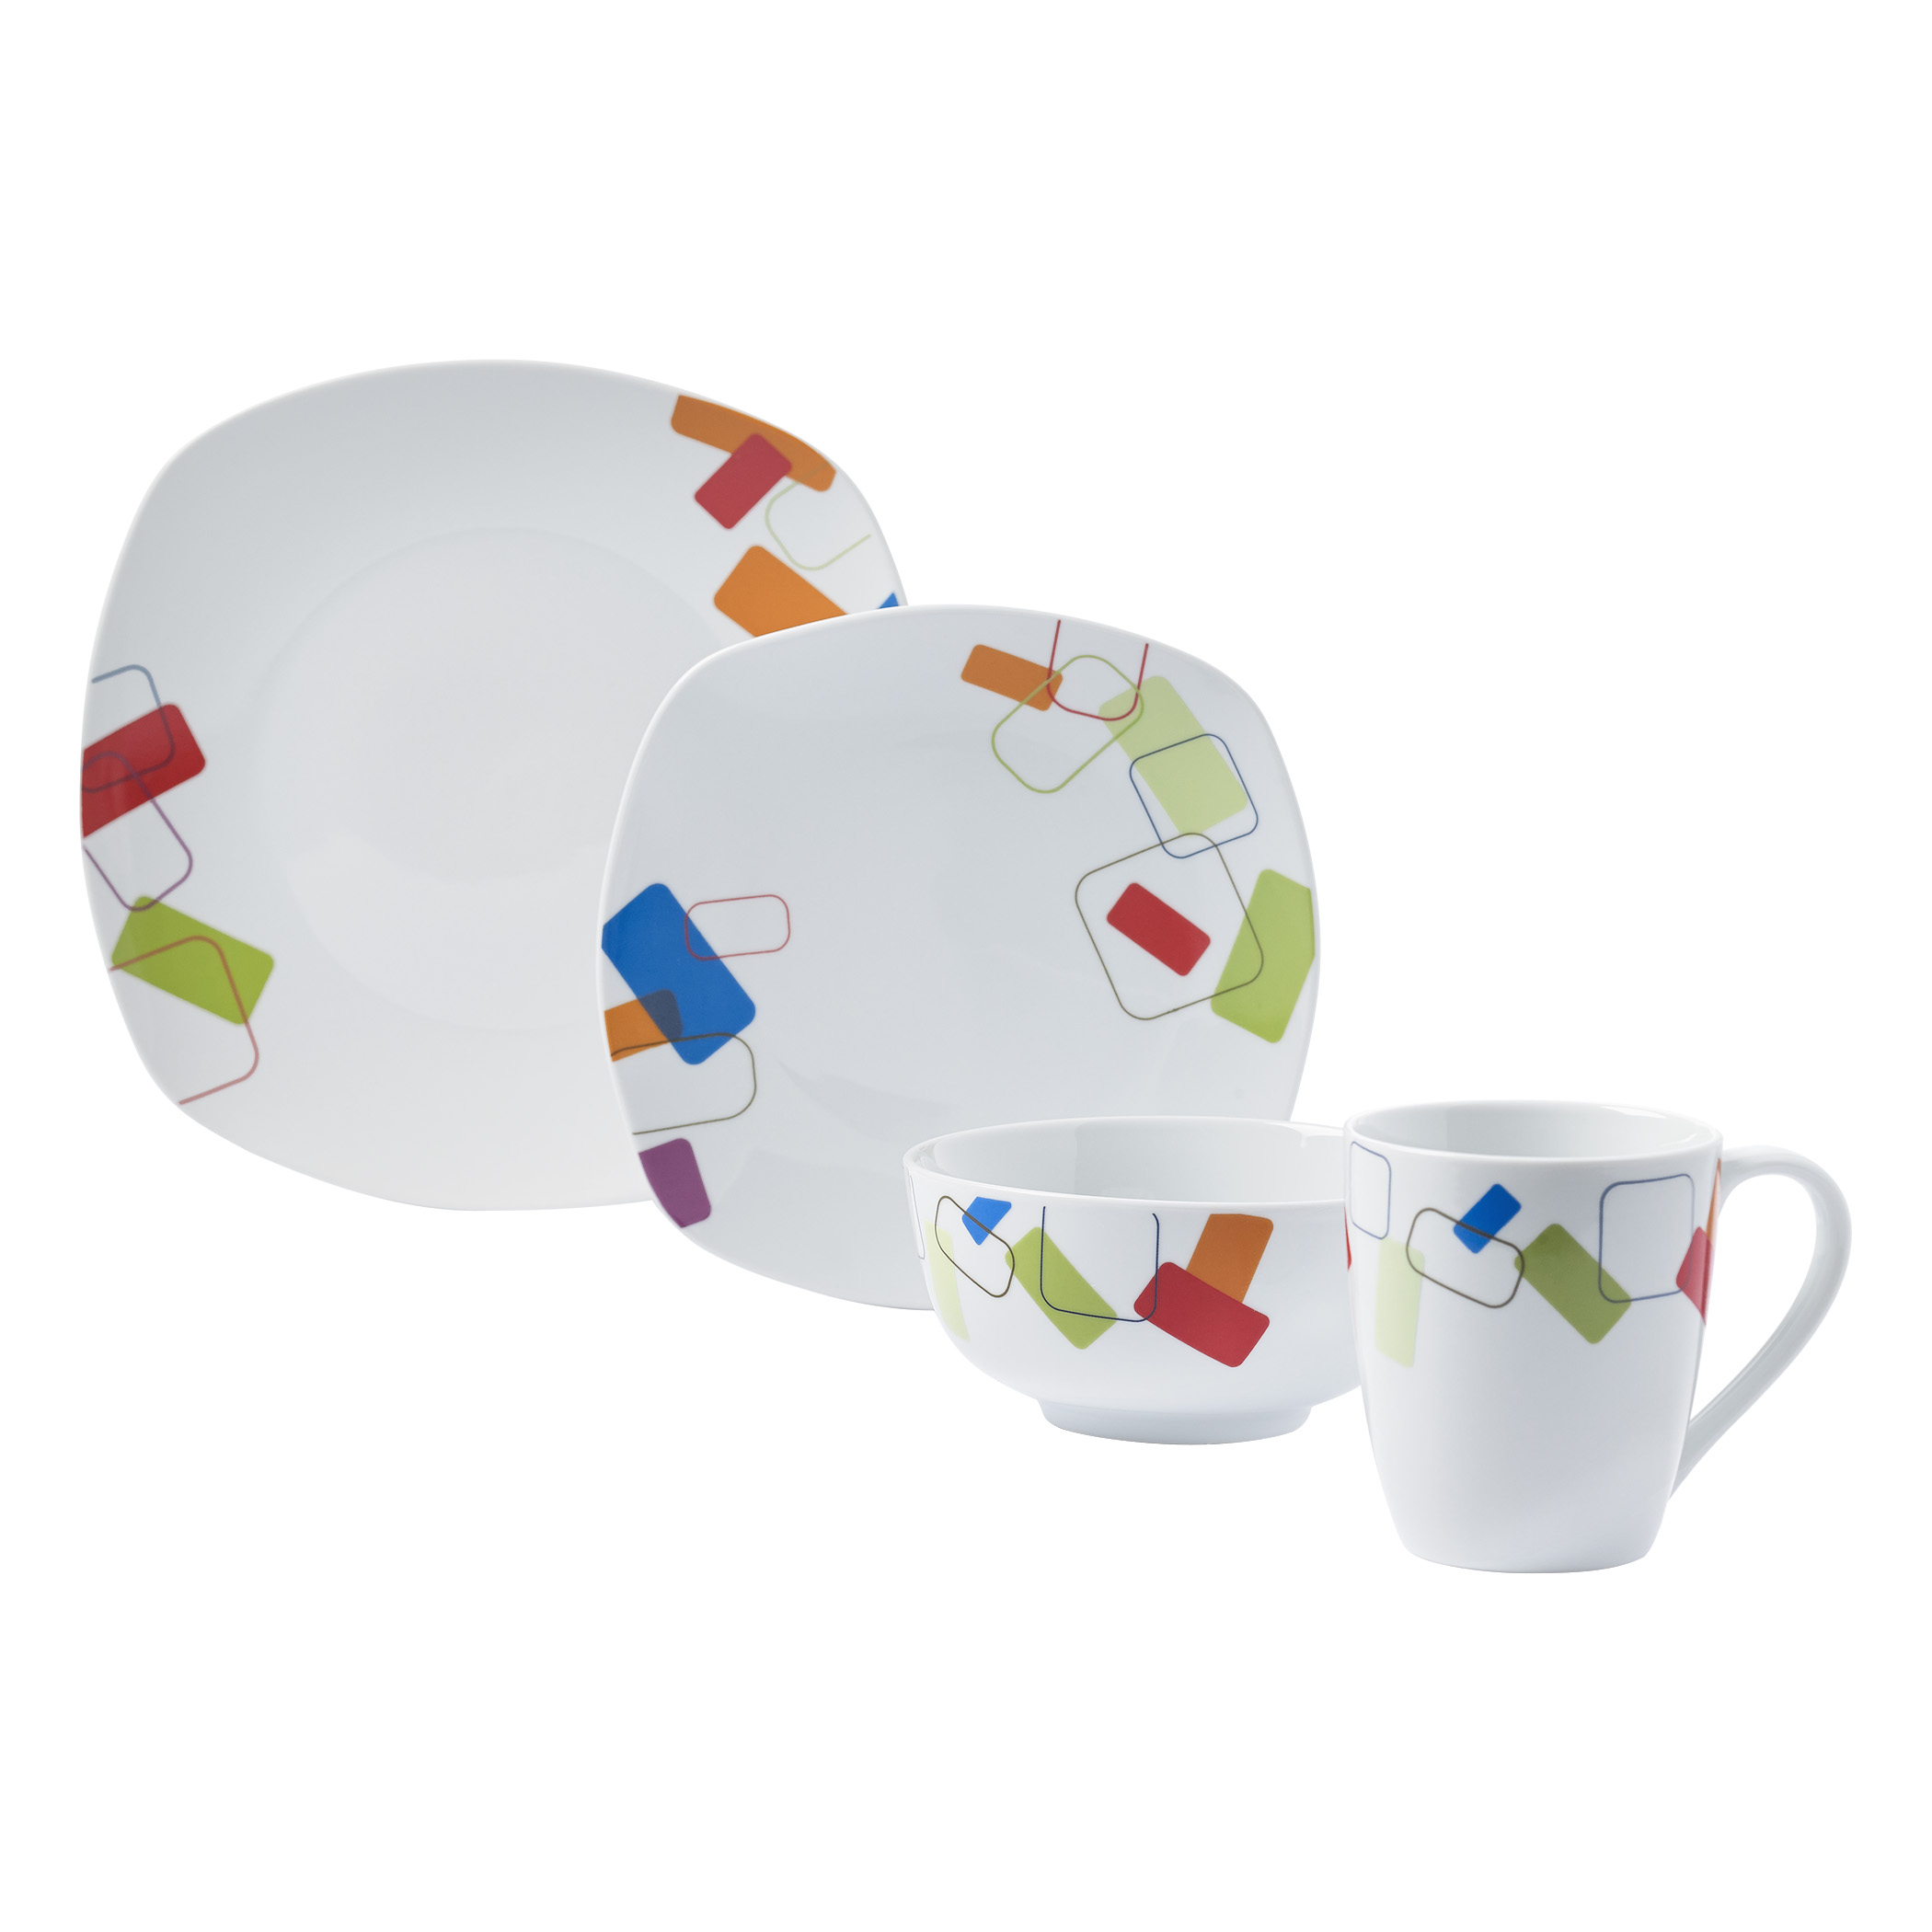 TTU-T4250-EC-16 Piece Porcelain Dinnerware Set by Tabletops Gallery ...  sc 1 st  Tabletops Unlimited : dinnerware 16 piece - pezcame.com